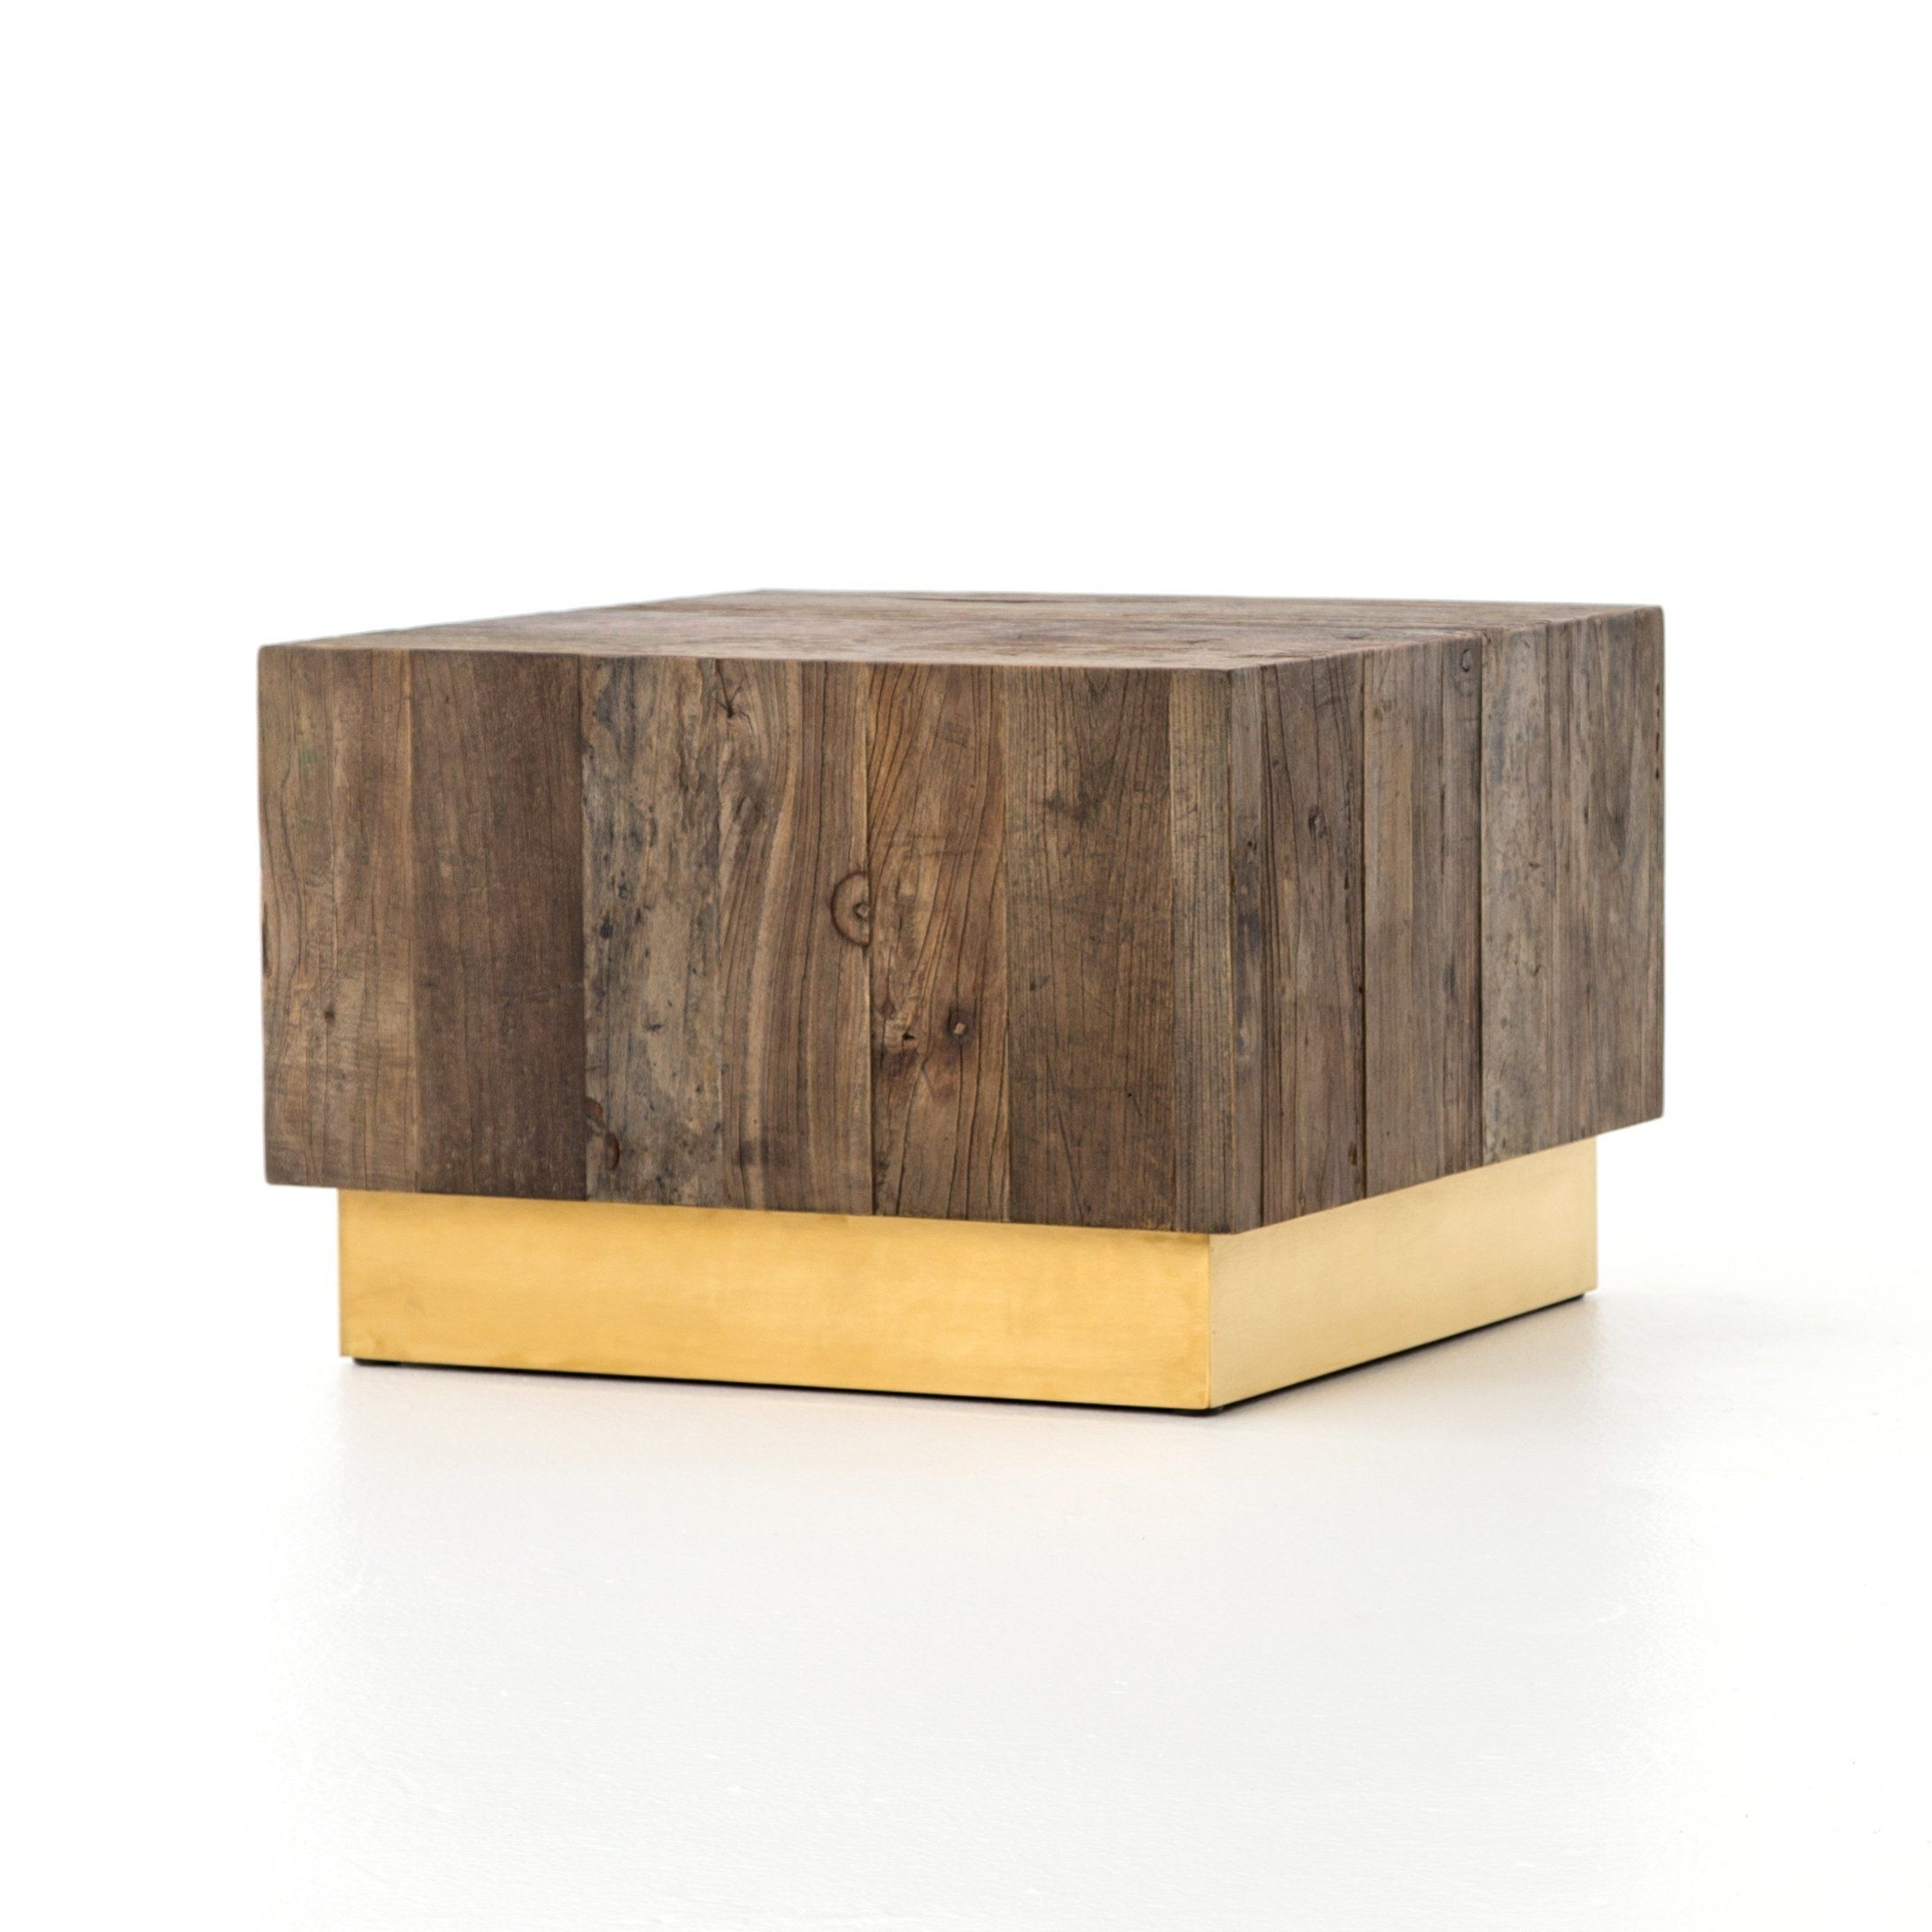 Hanaley Reclaimed Elm With Brass Base Coffee Table | Cube Design pertaining to Joni Brass And Wood Coffee Tables (Image 15 of 30)